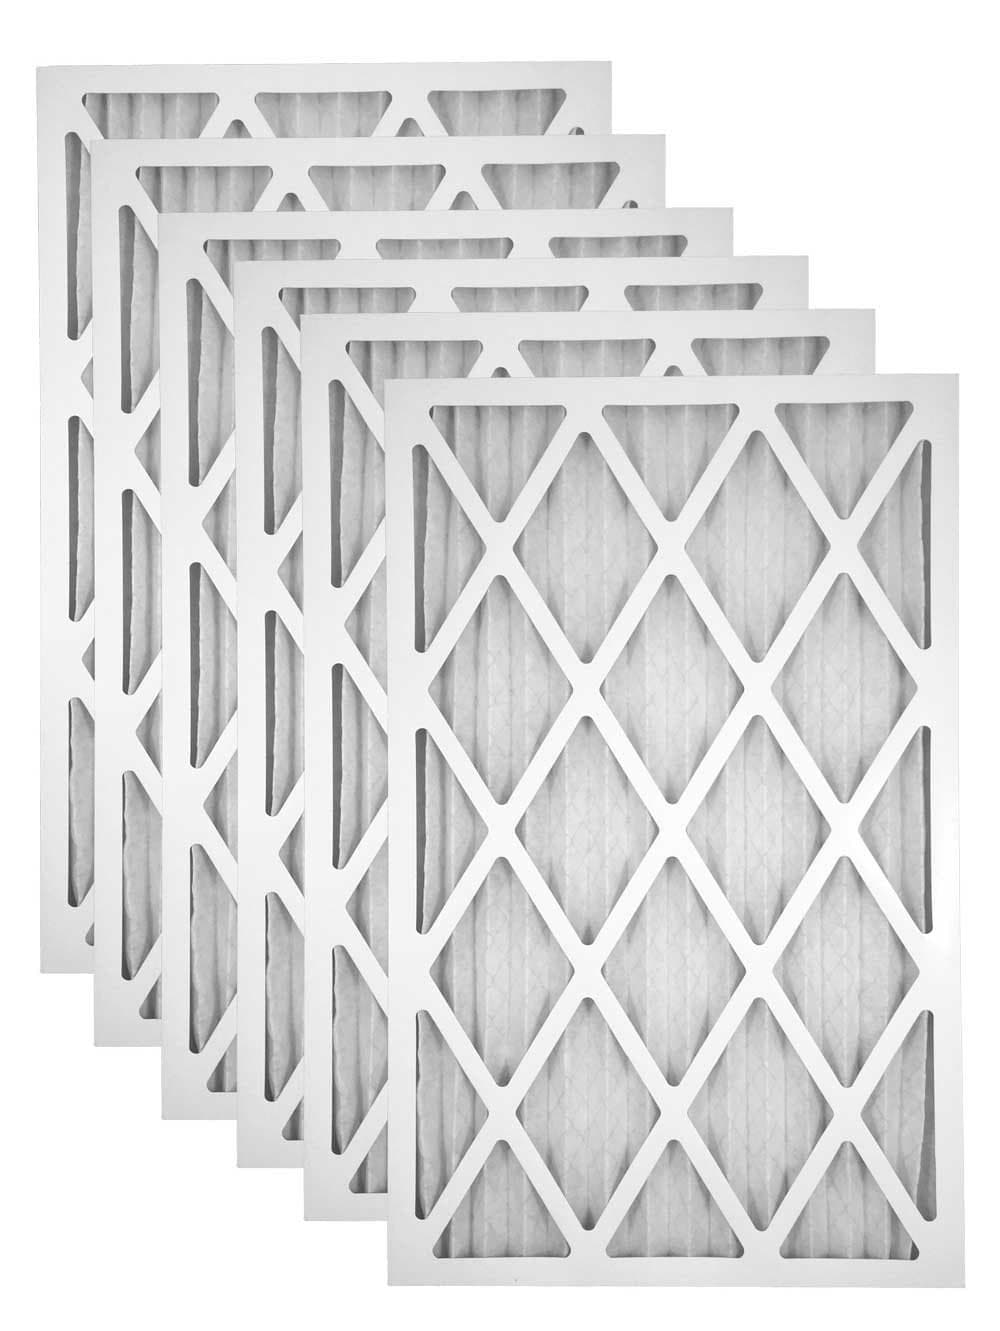 20x20x2 Merv 8 Geothermal Furnace Filter - Case of 6